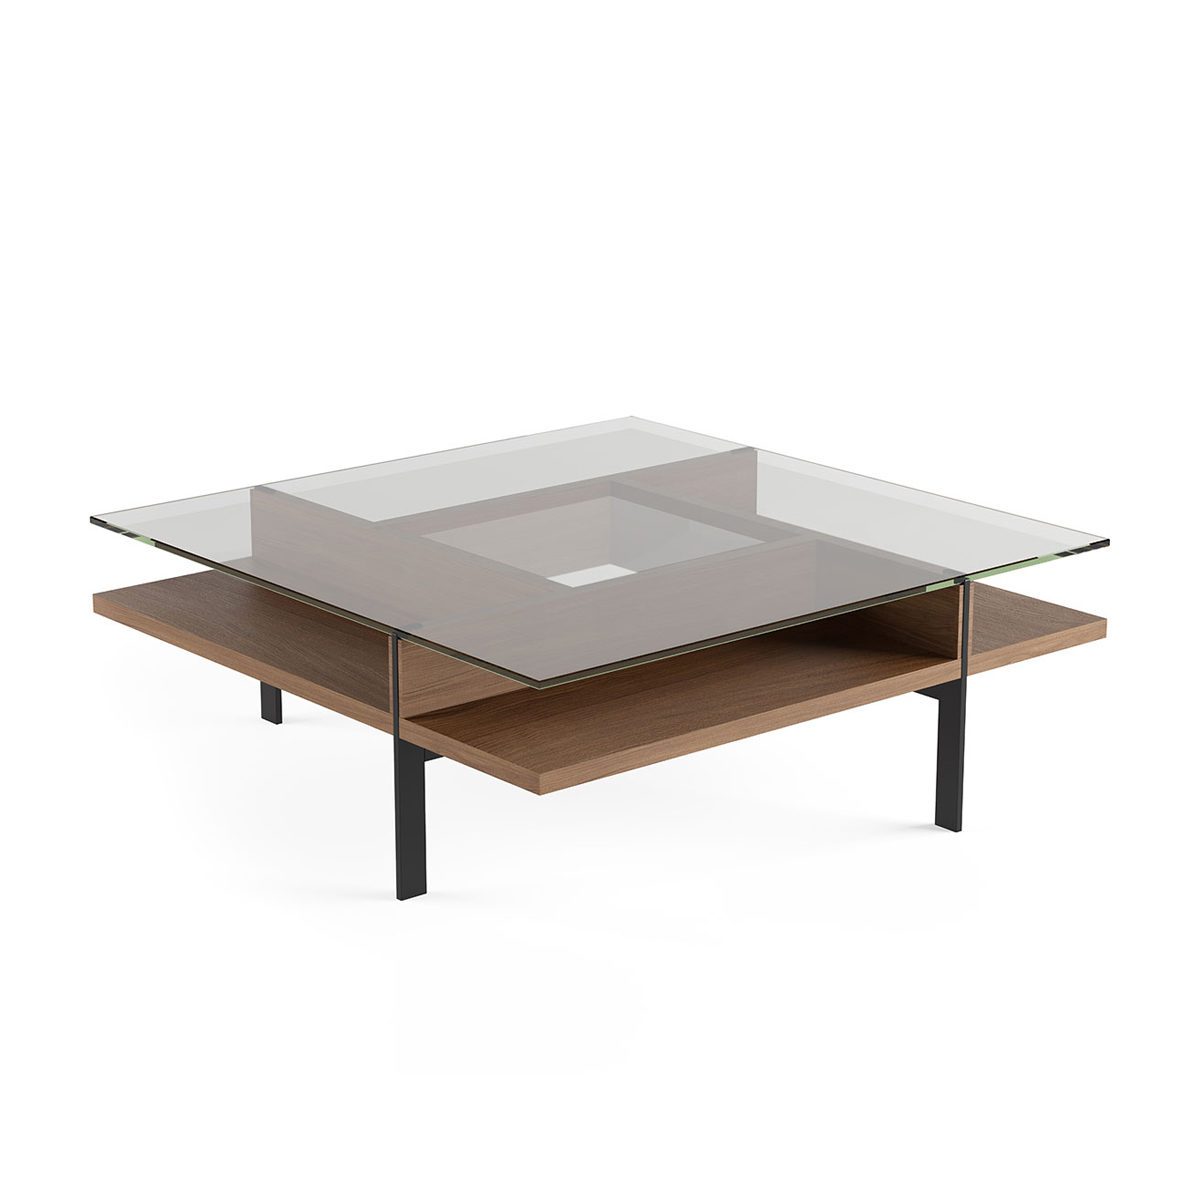 Terrace square coffee table 1150 bdi furniture watchthetrailerfo